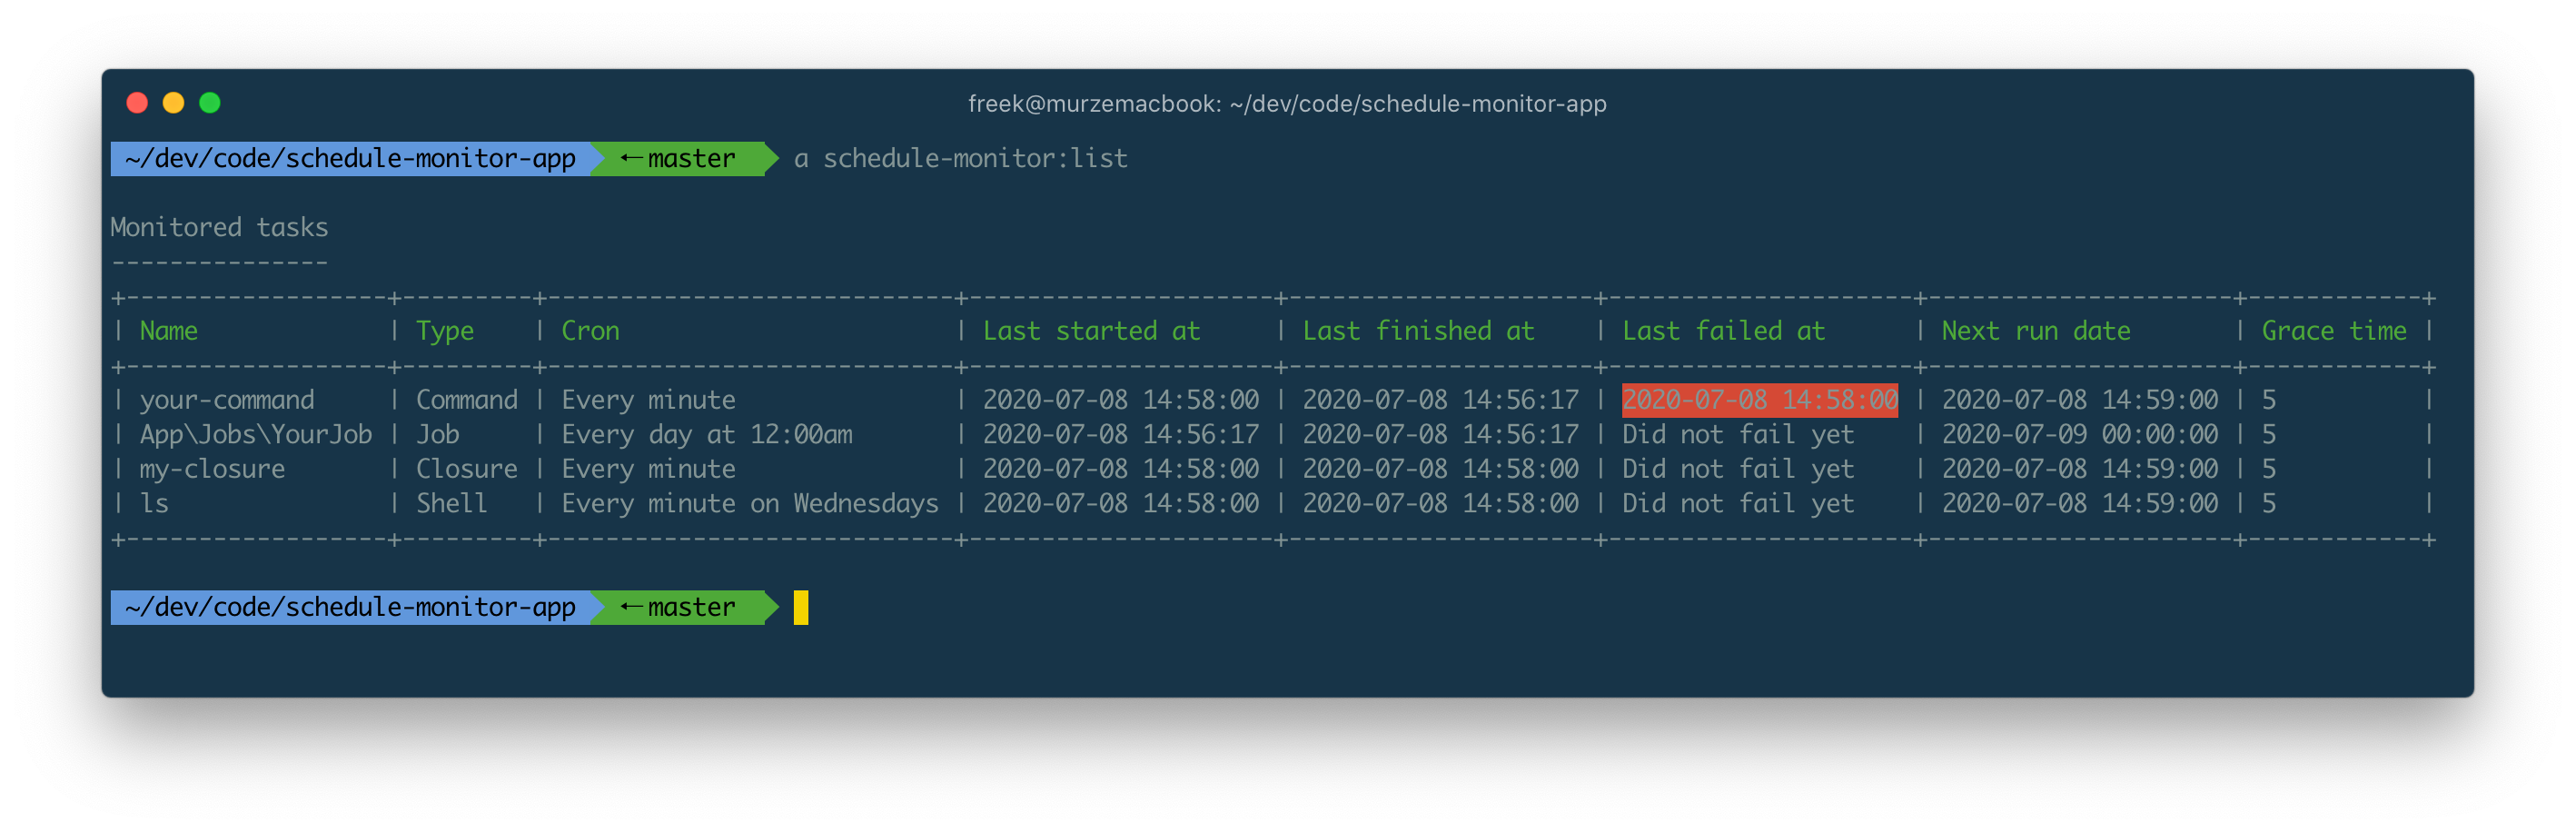 Monitor scheduled tasks in a Laravel app - Package Image